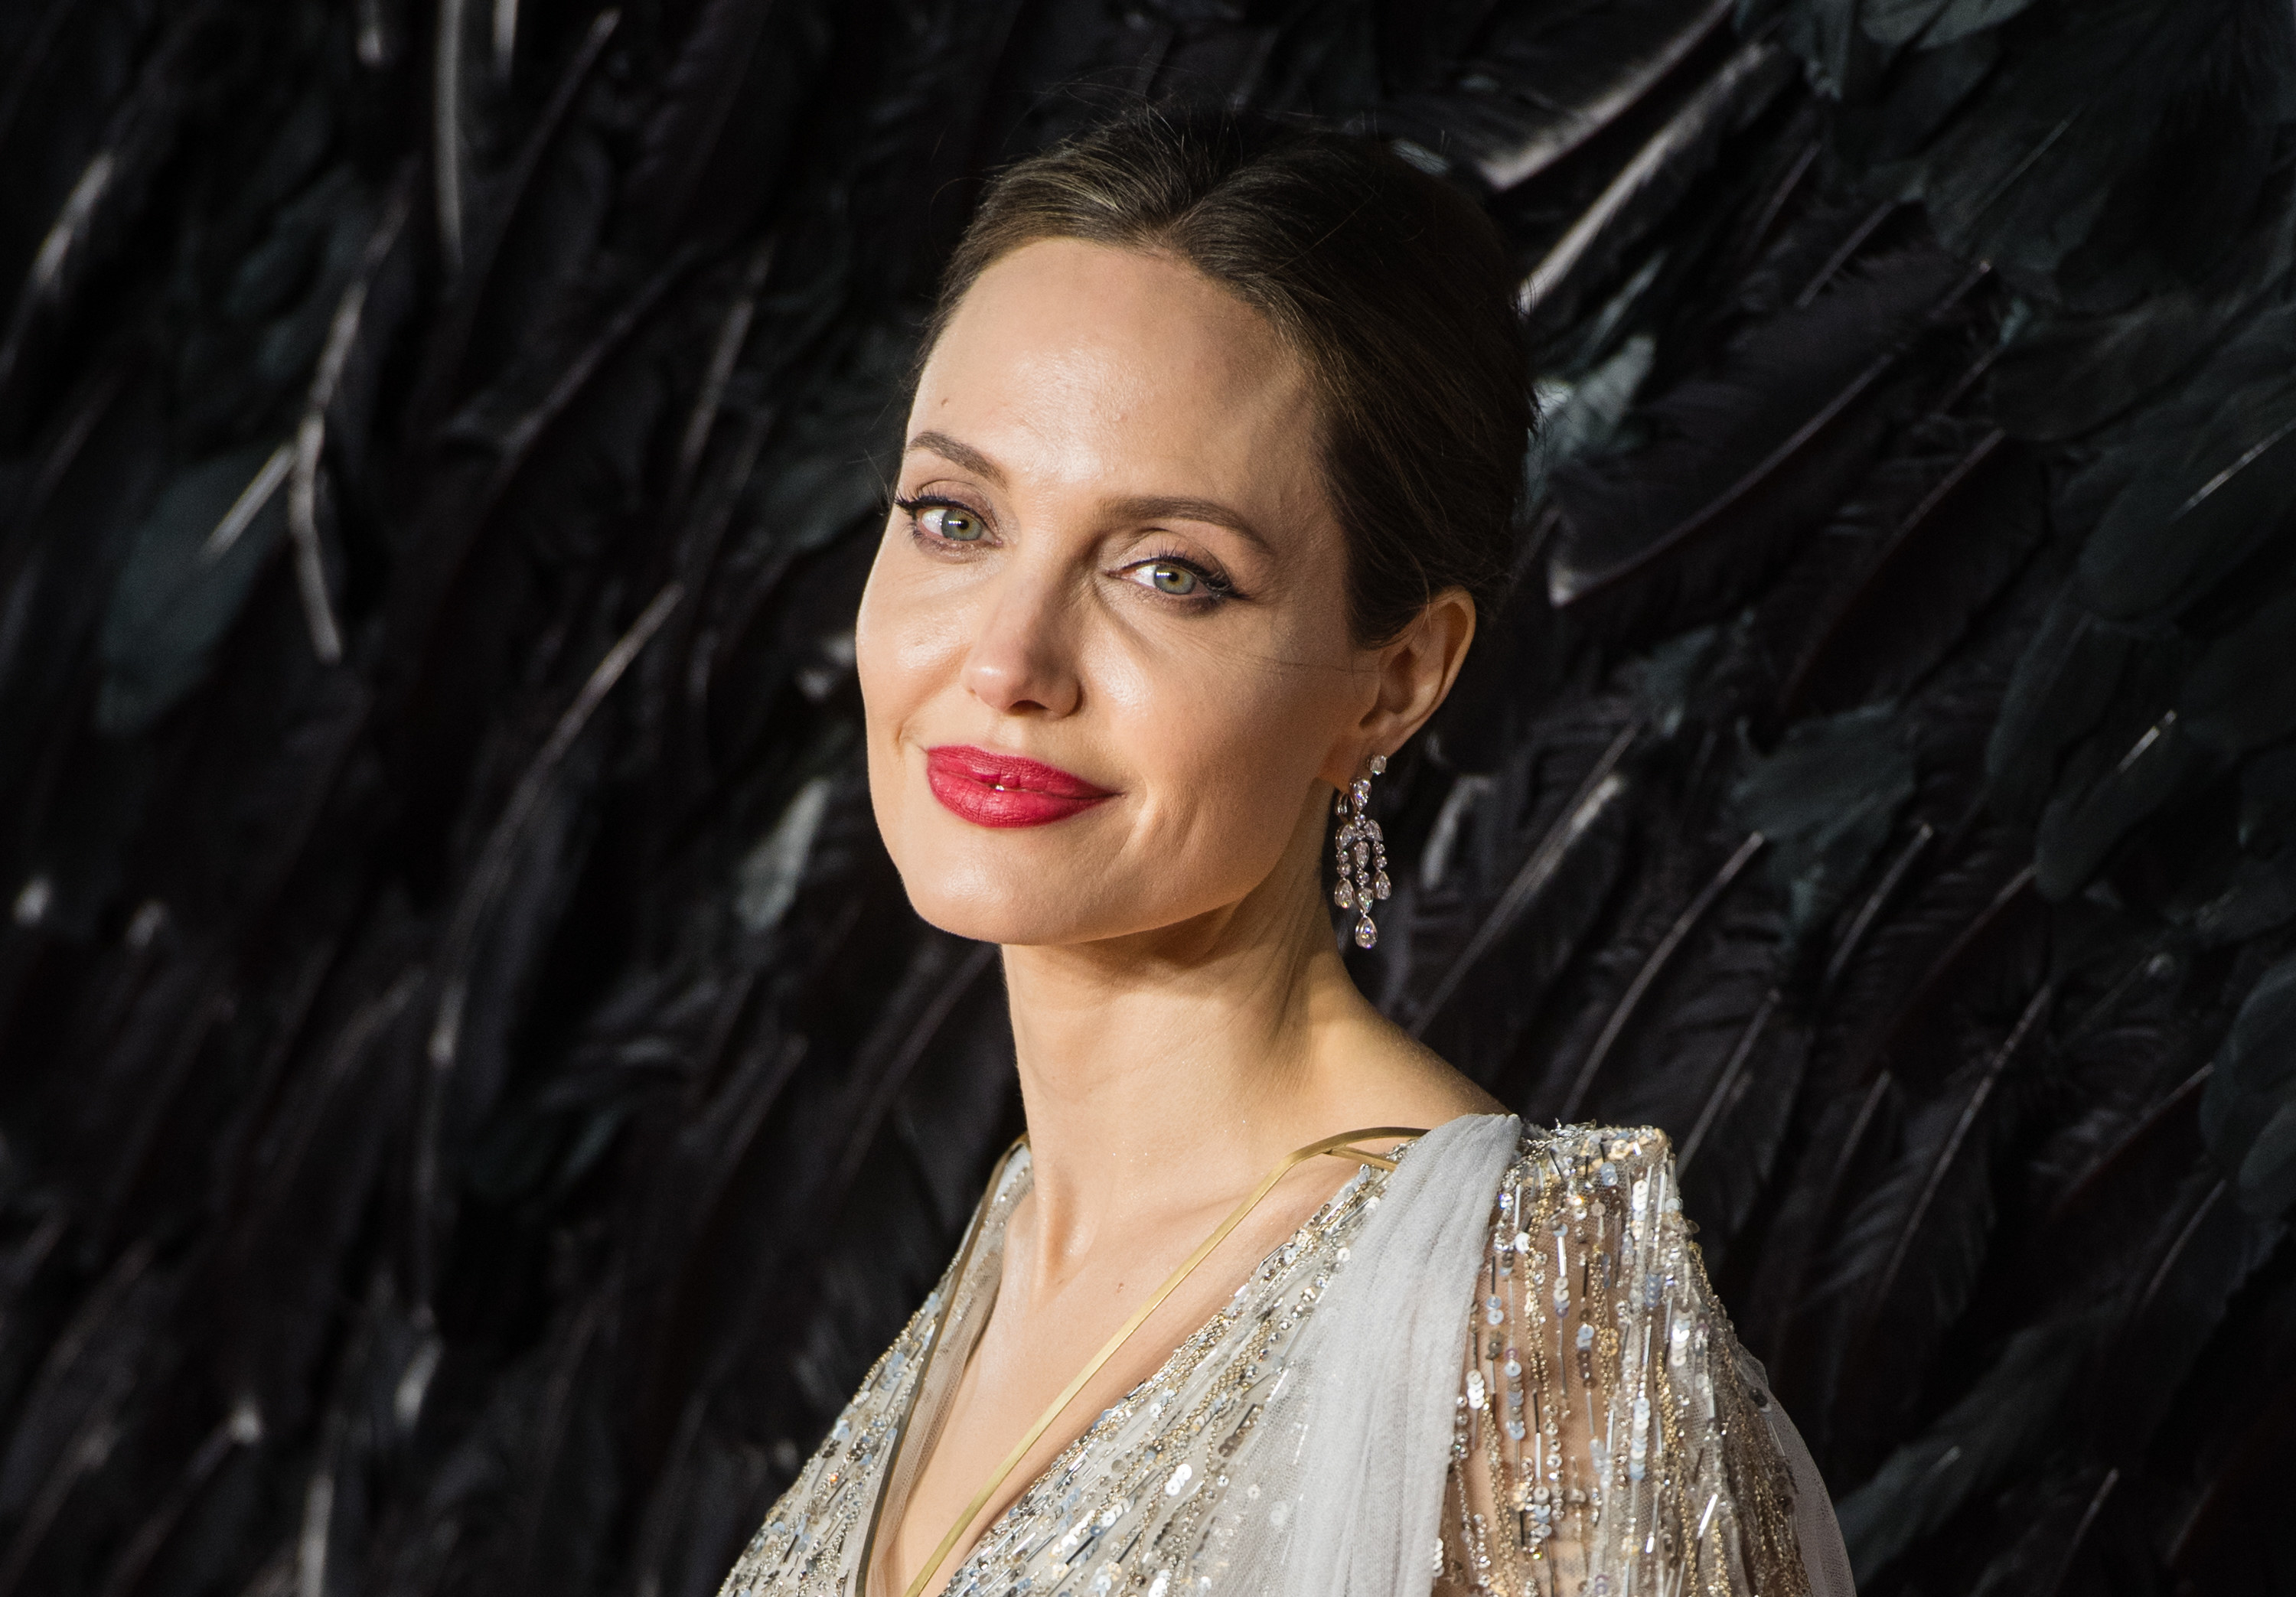 A smiling Angelina